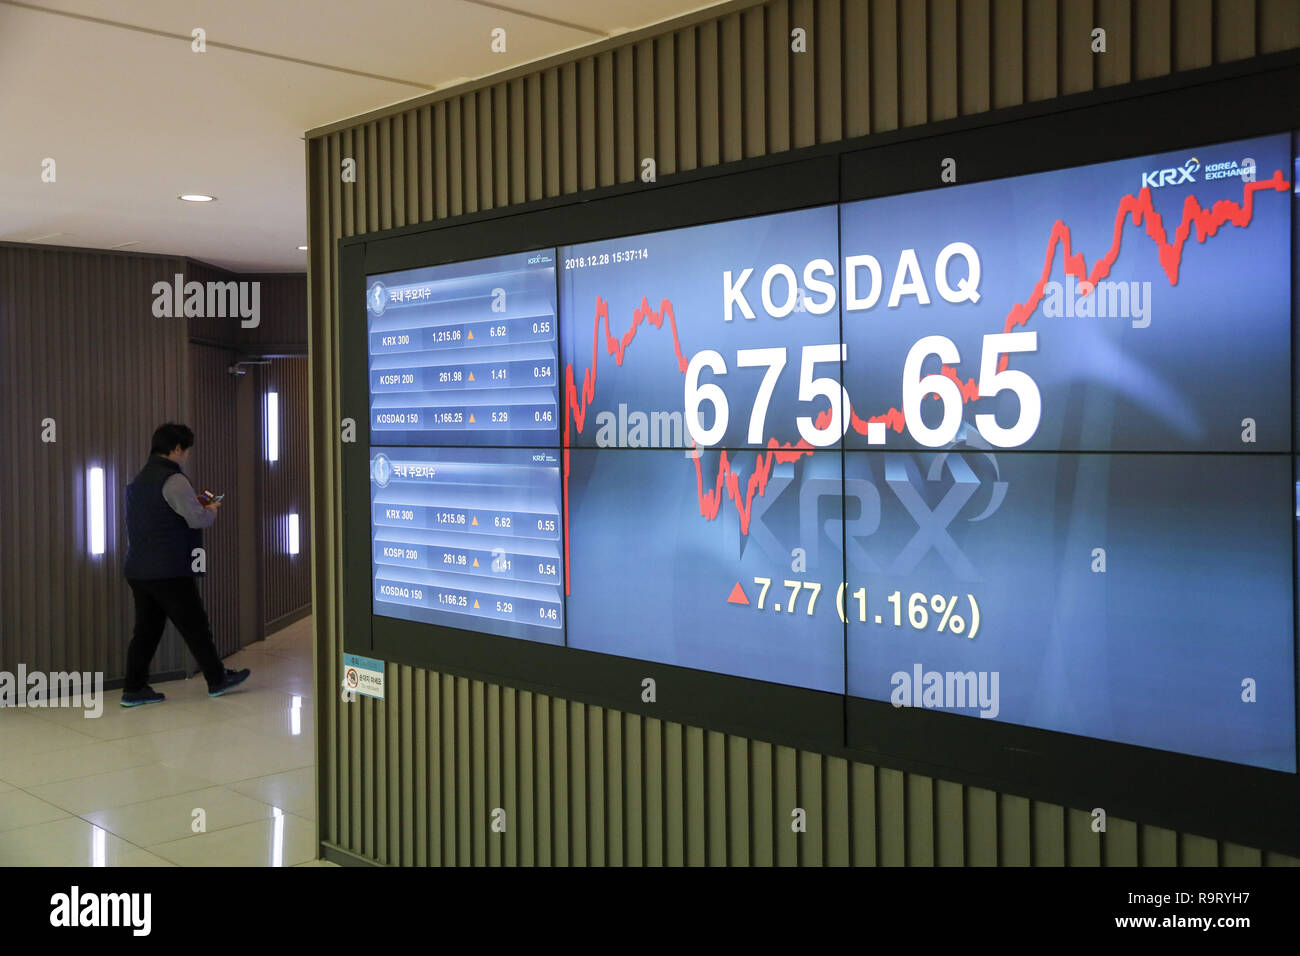 Asian Stock Markets Live Update December 28 2018 Seoul South Korea A View Of Stock